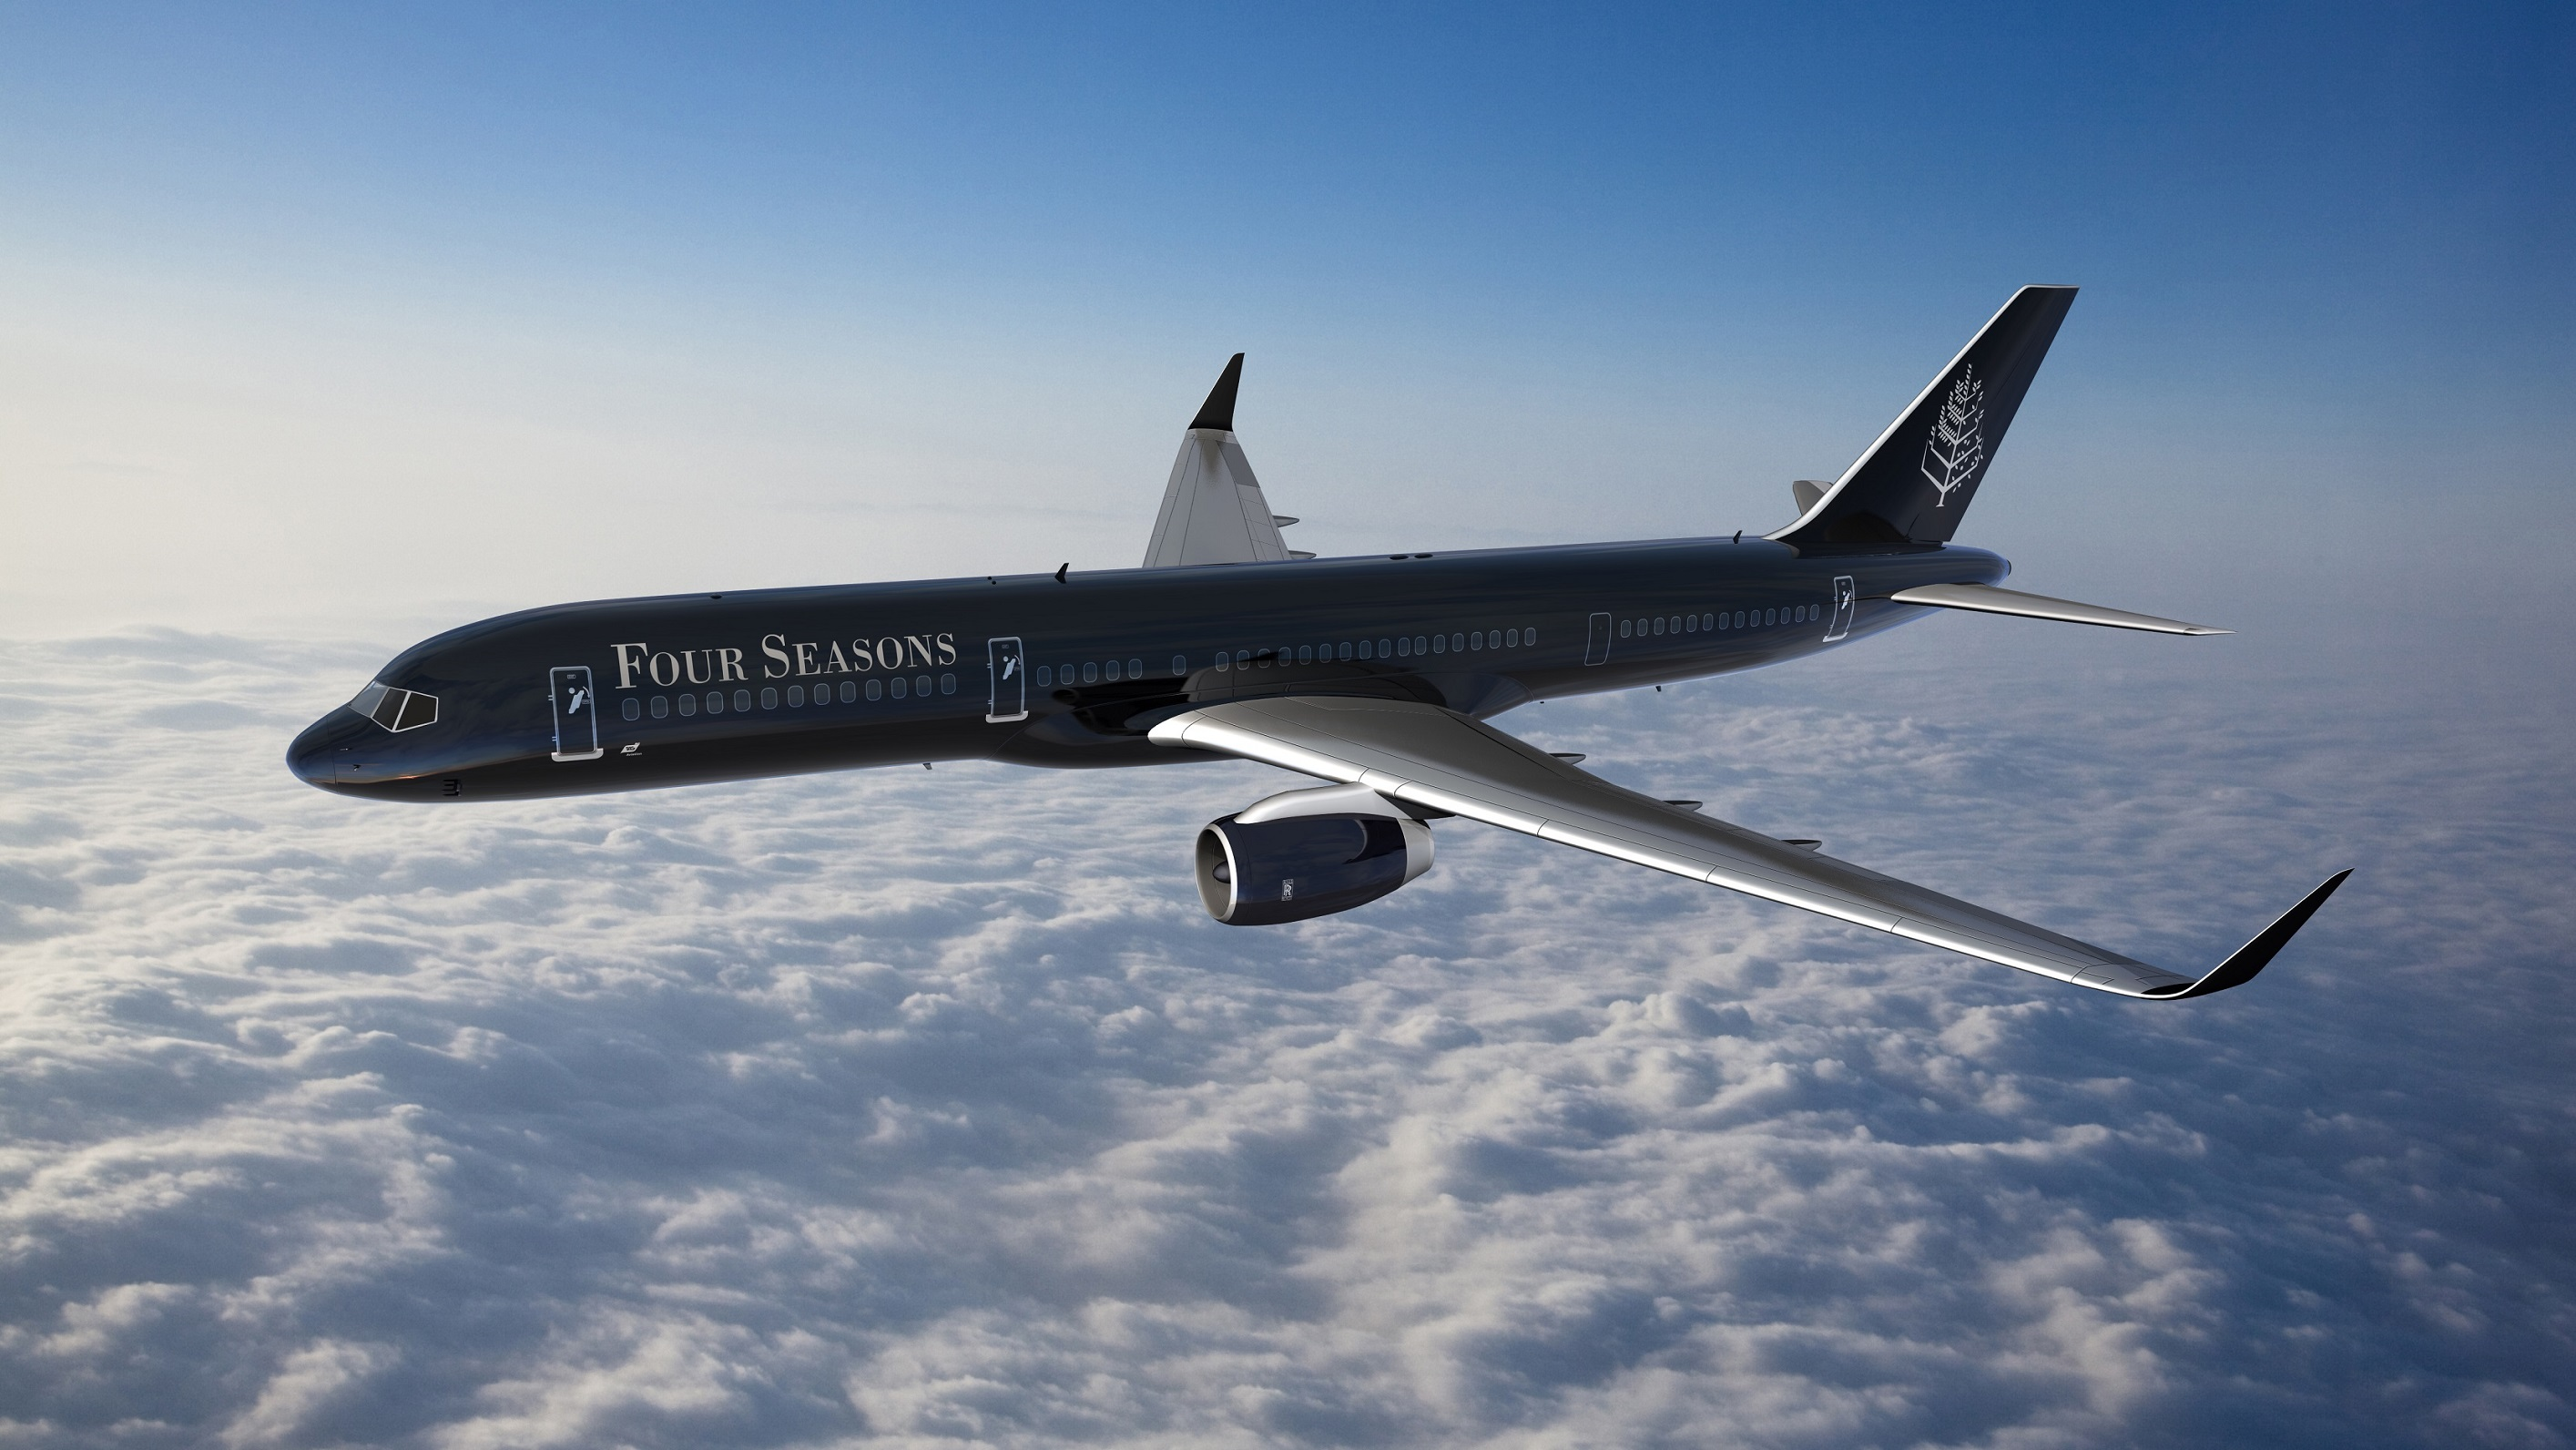 Four Seasons Soars to New Heights with Hotel Industry'sFirst Fully Branded Jet